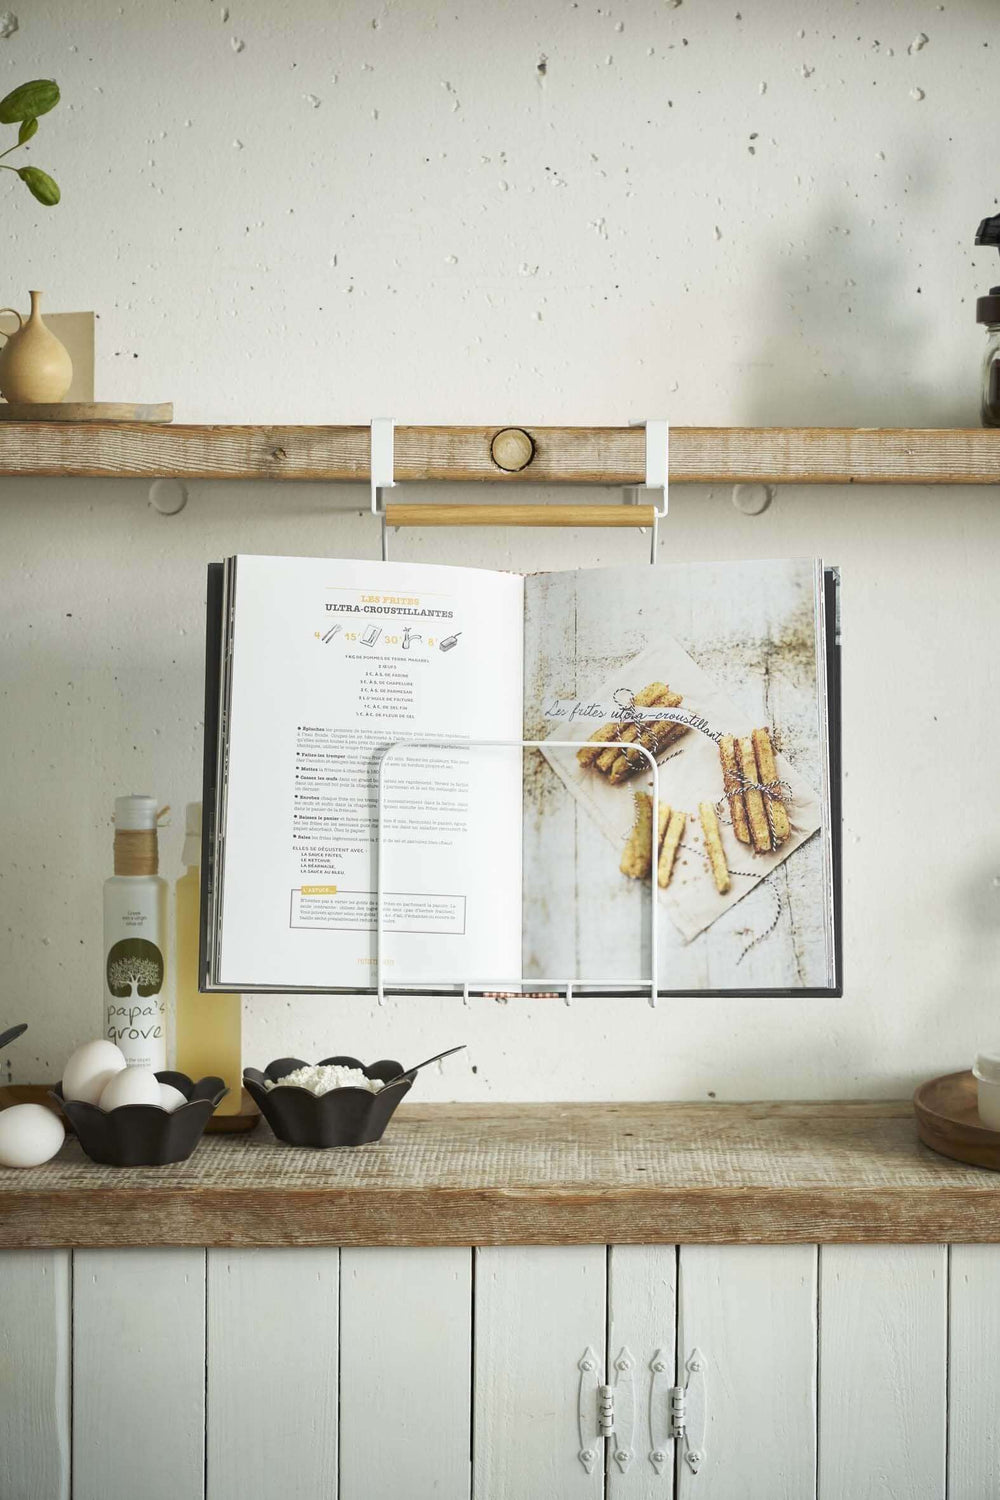 Detailed view of Yamazaki Under-Shelf Tablet and Cookbook Holder, holding a cookbook open